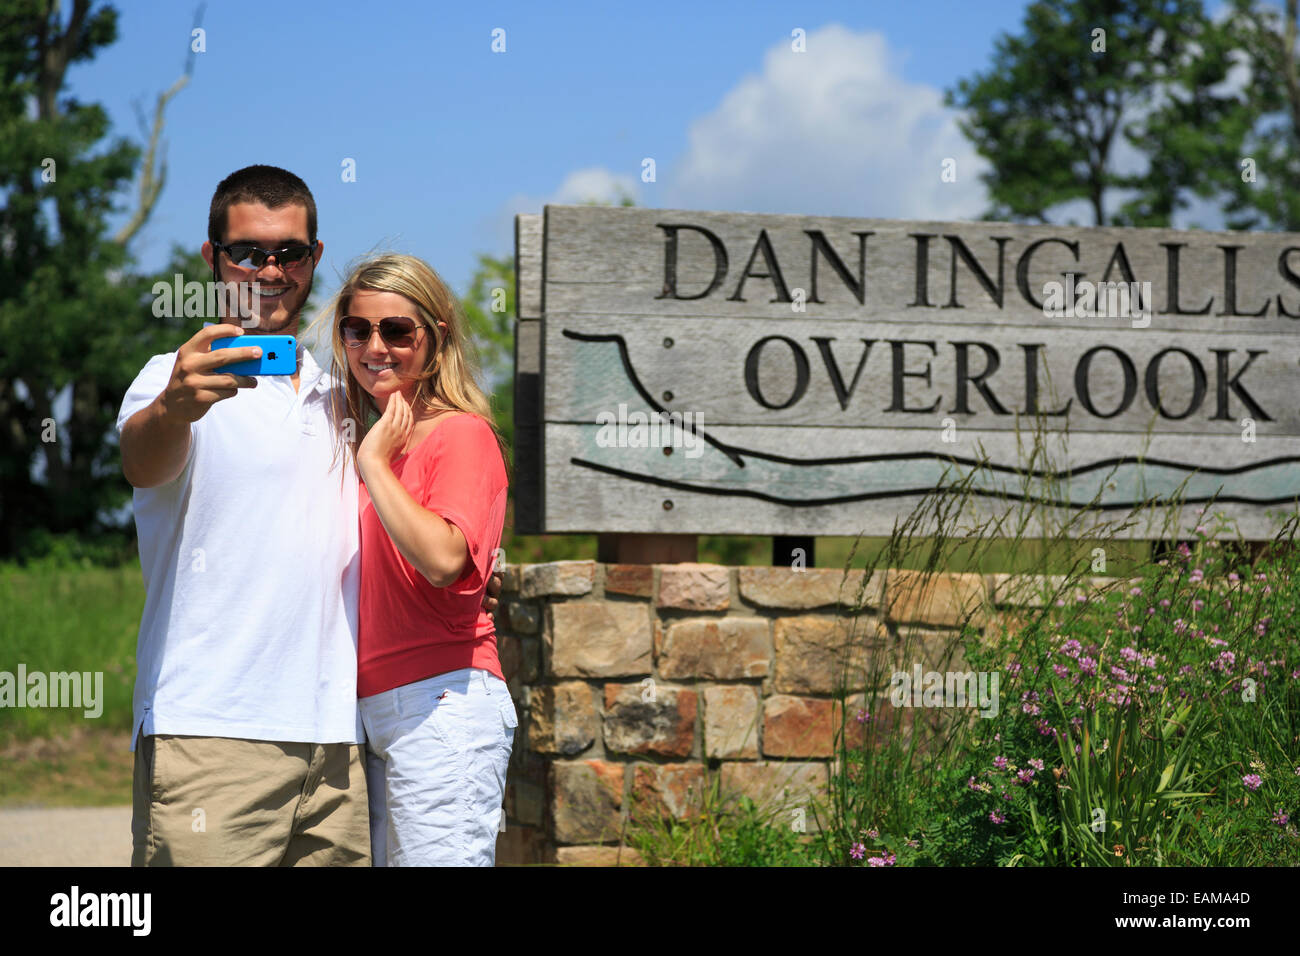 Couple at Dan Ingalls Overlook, Bath County, Virginia near Homestead Resort - Stock Image